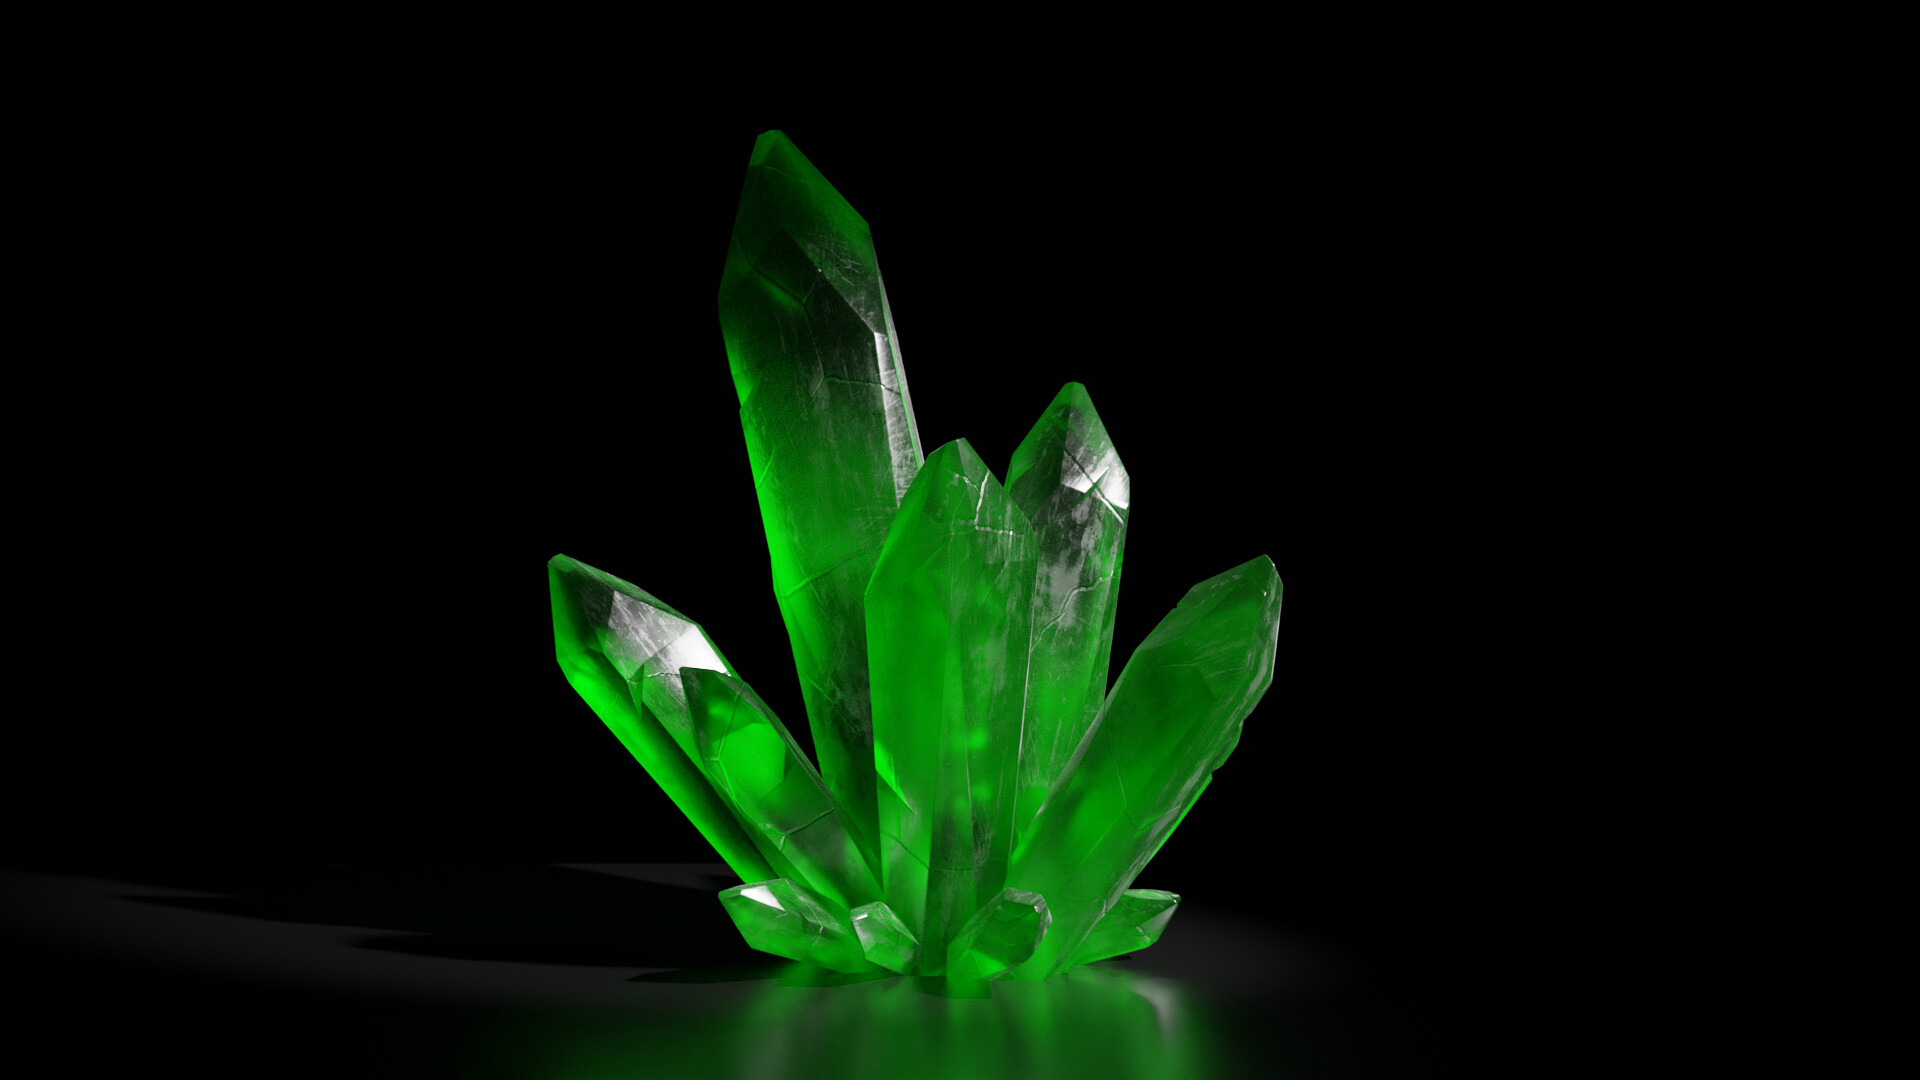 A higher quality 1080 render of the green crystal.